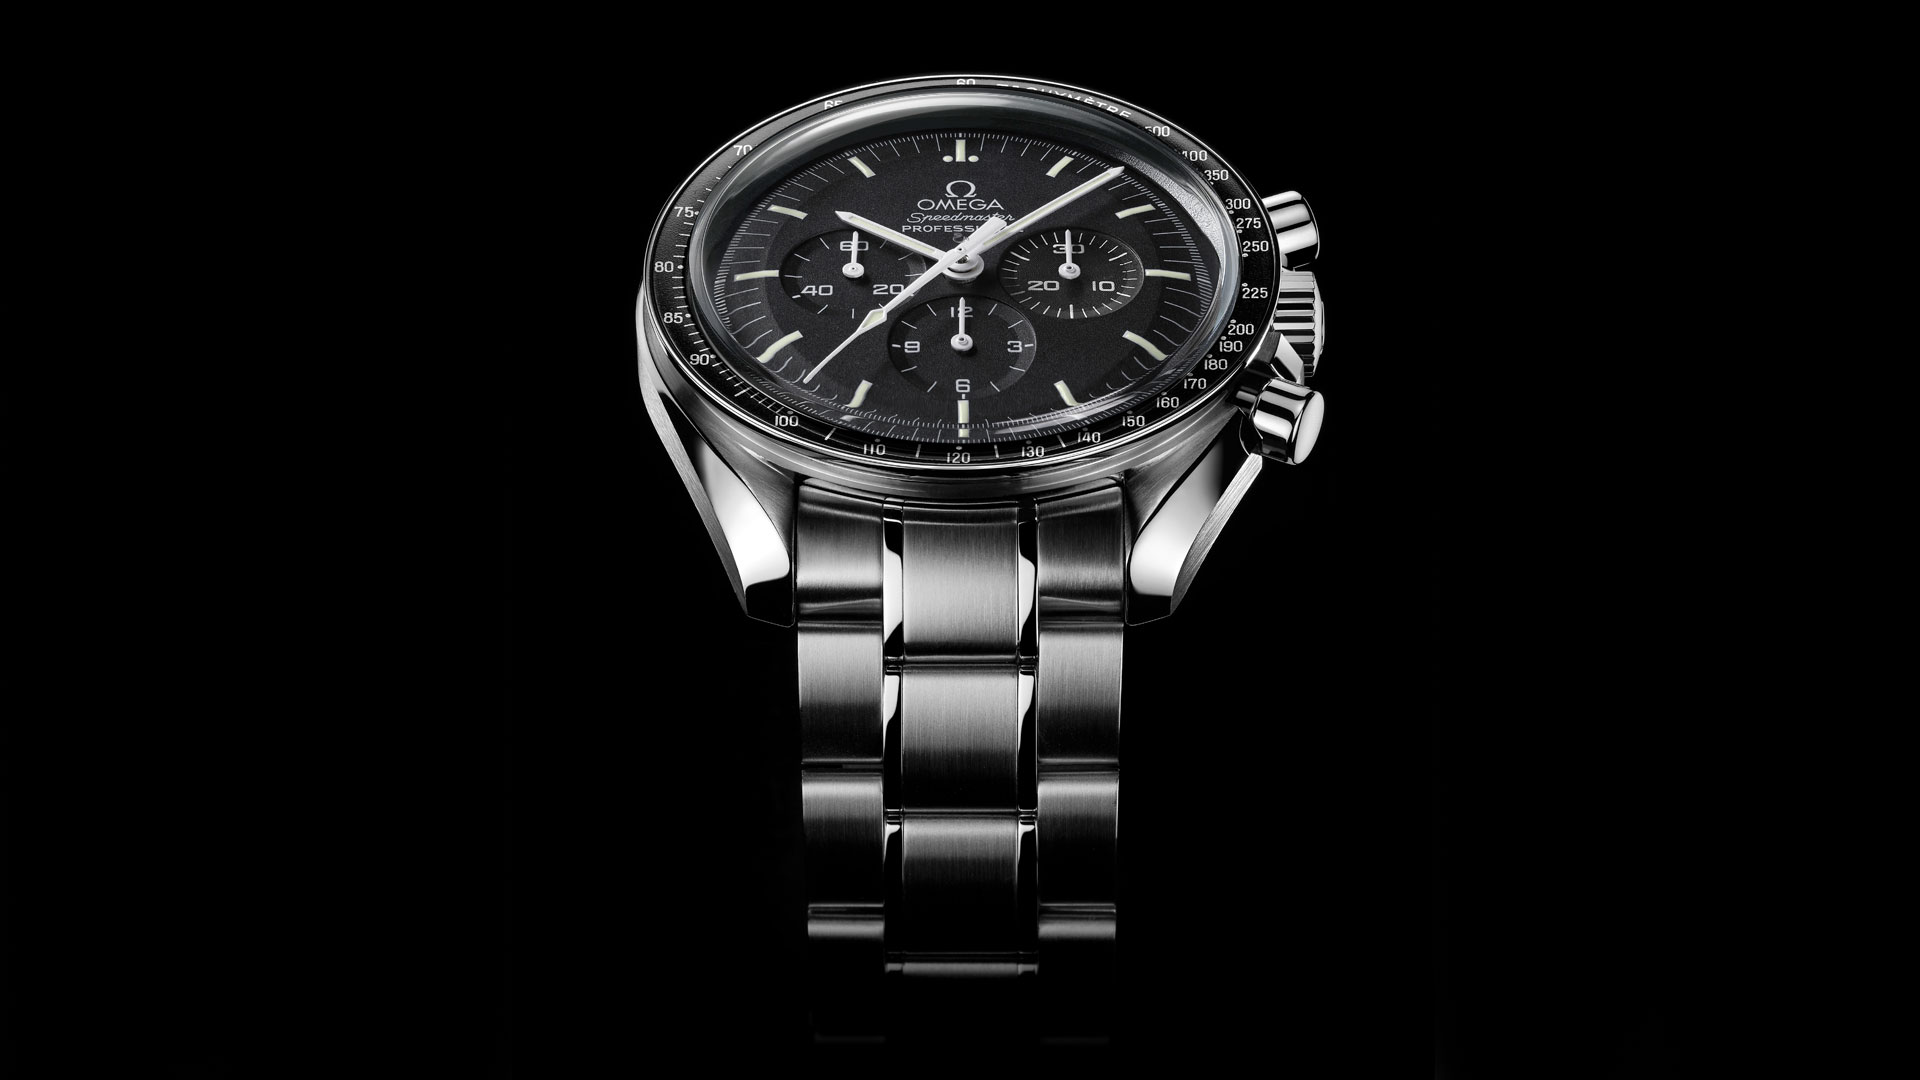 An Iconic Omega Chronograph Watch-Omega Speedmaster '57